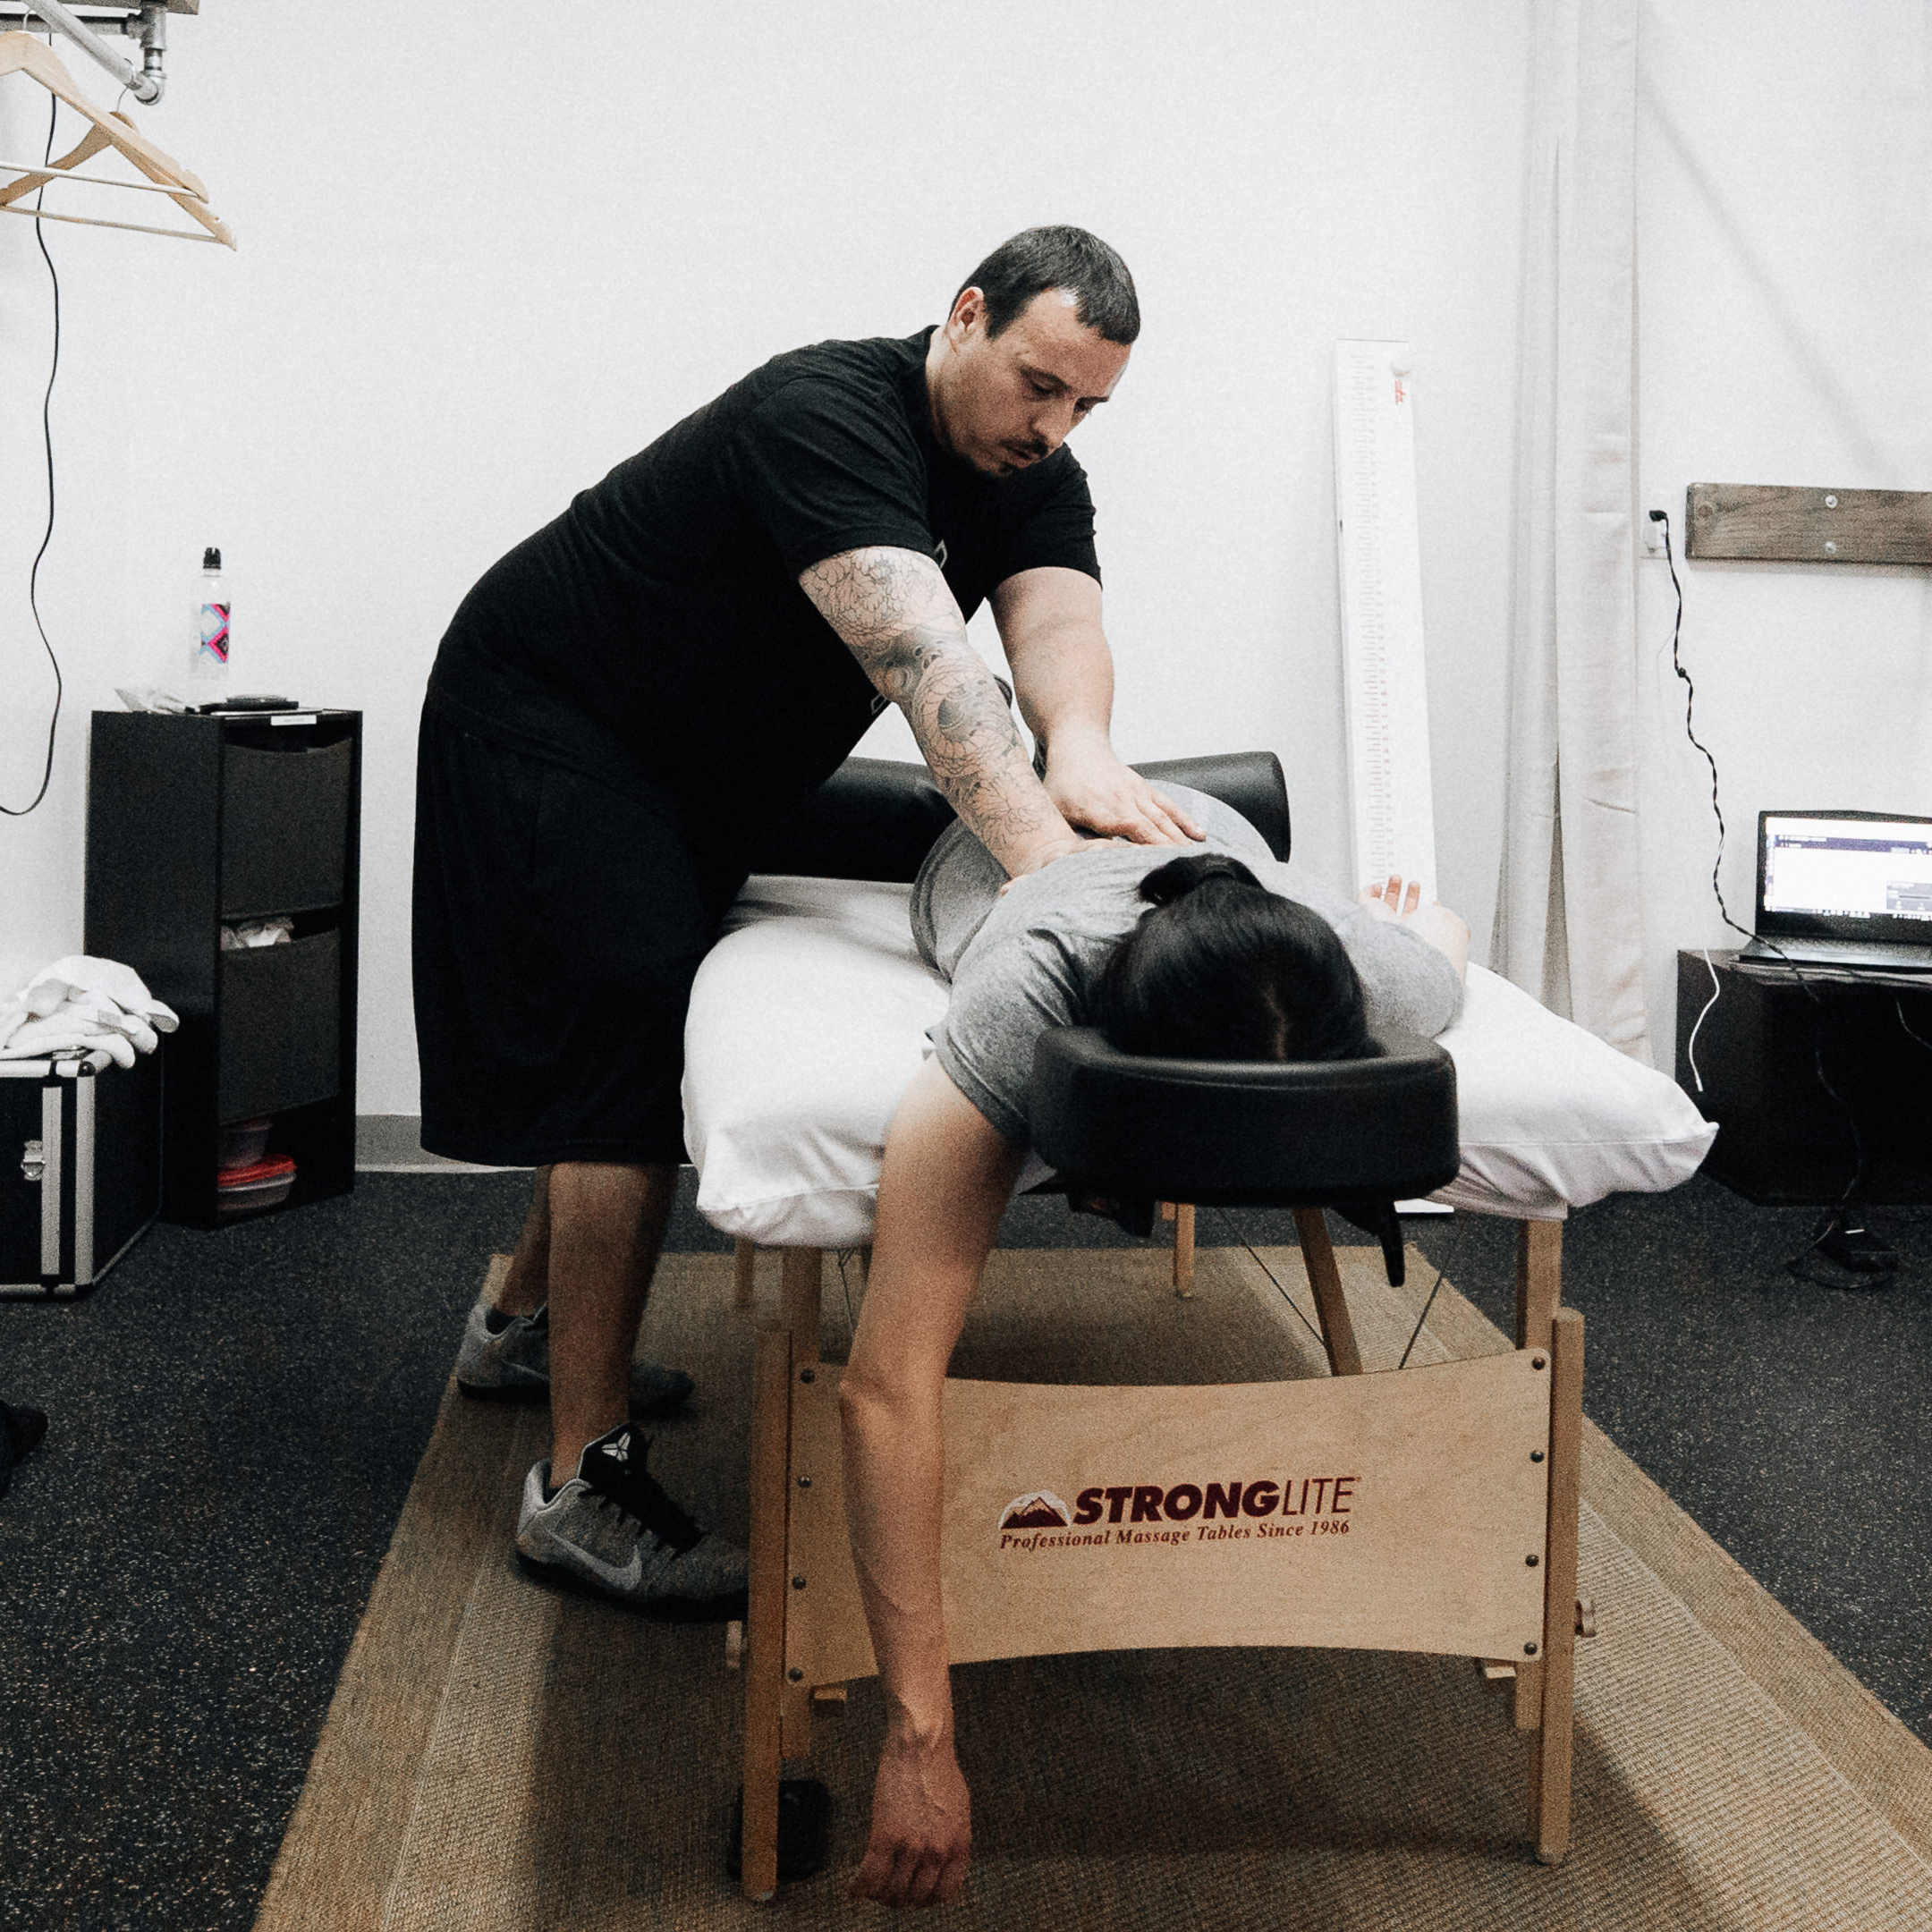 Treat yourself to some care - Members have the opportunity to schedule a bodywork session to treat sore muscles and any areas of pain. With sessions ranging from 30 minutes and beyond, you'll be sure to go home feeling better knowing that you treated your body well.